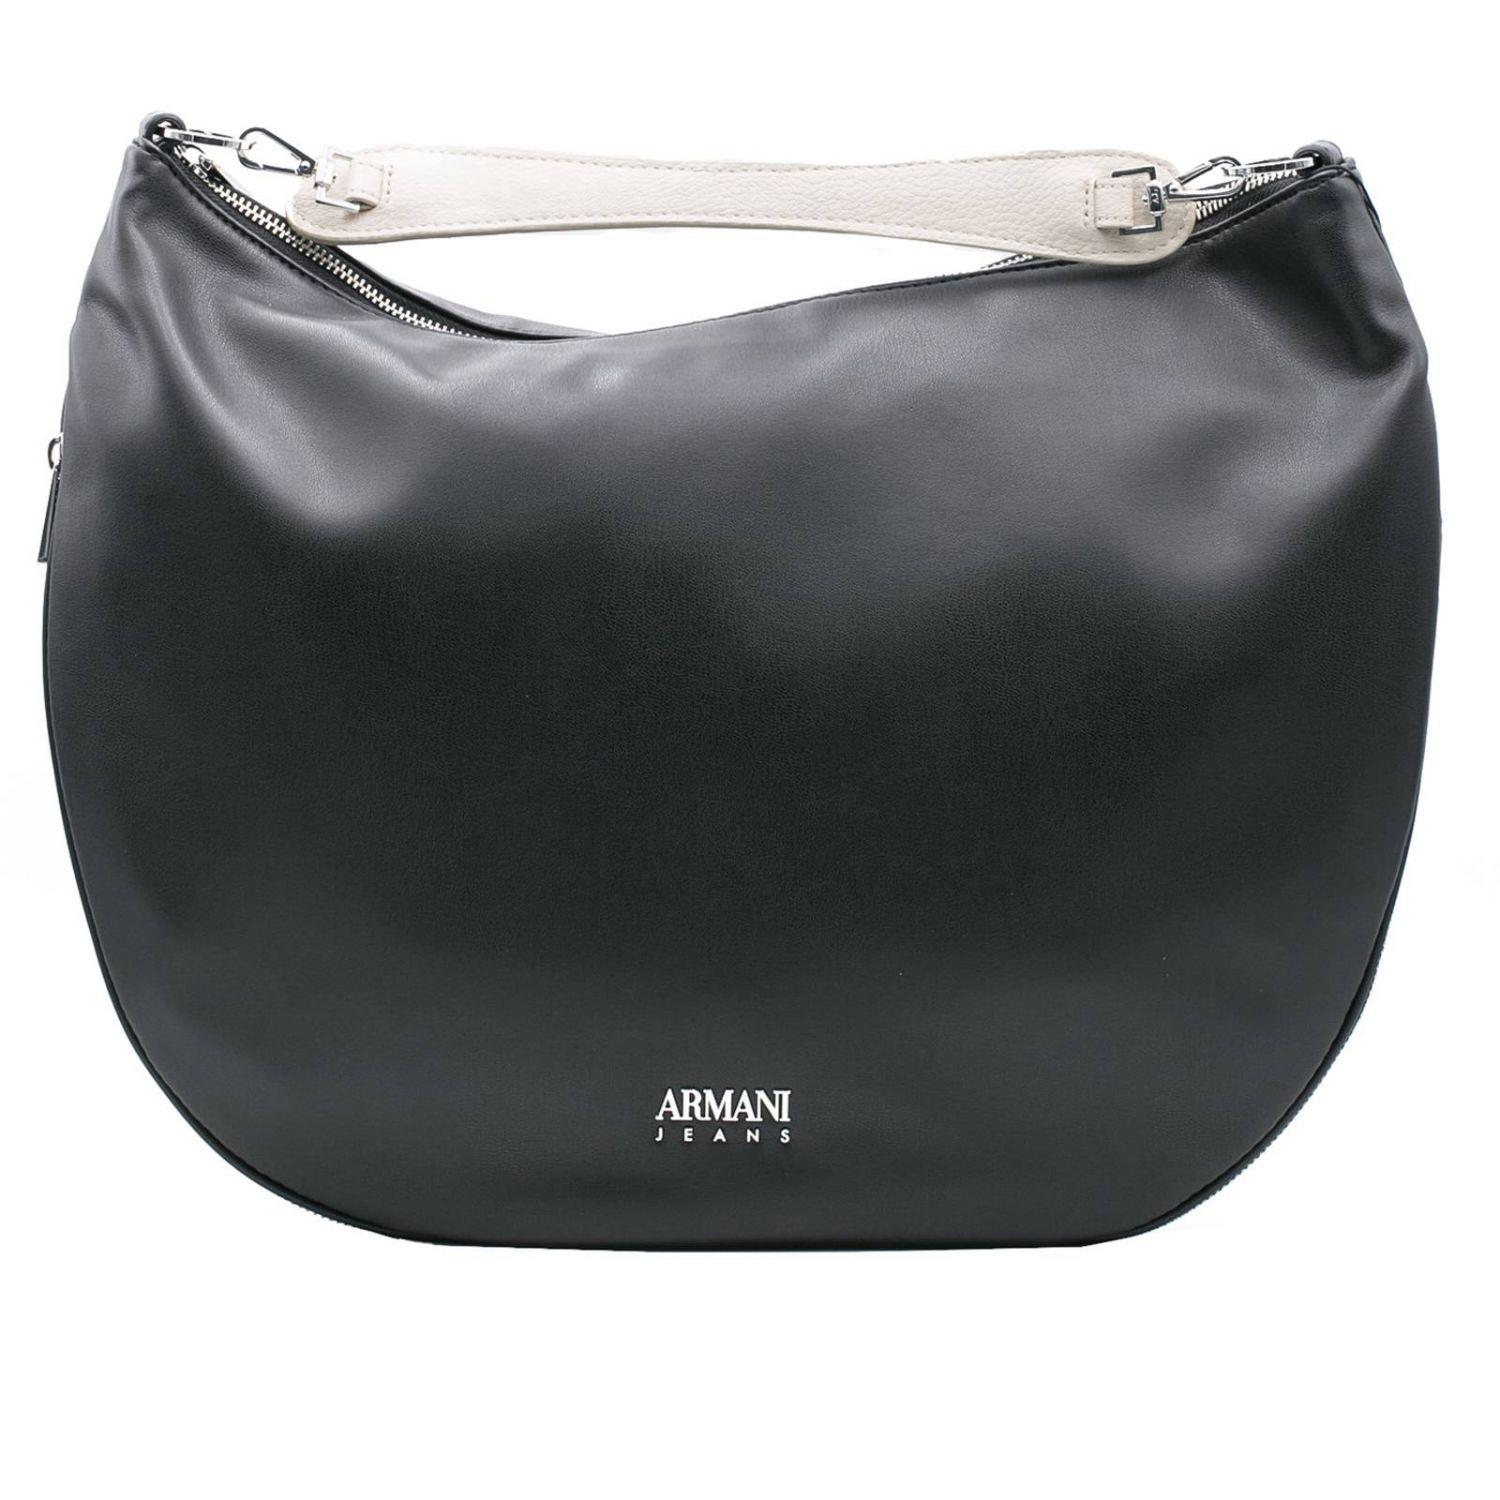 2ad58b547593 Lyst - Armani Jeans Shoulder Bag Women in Black